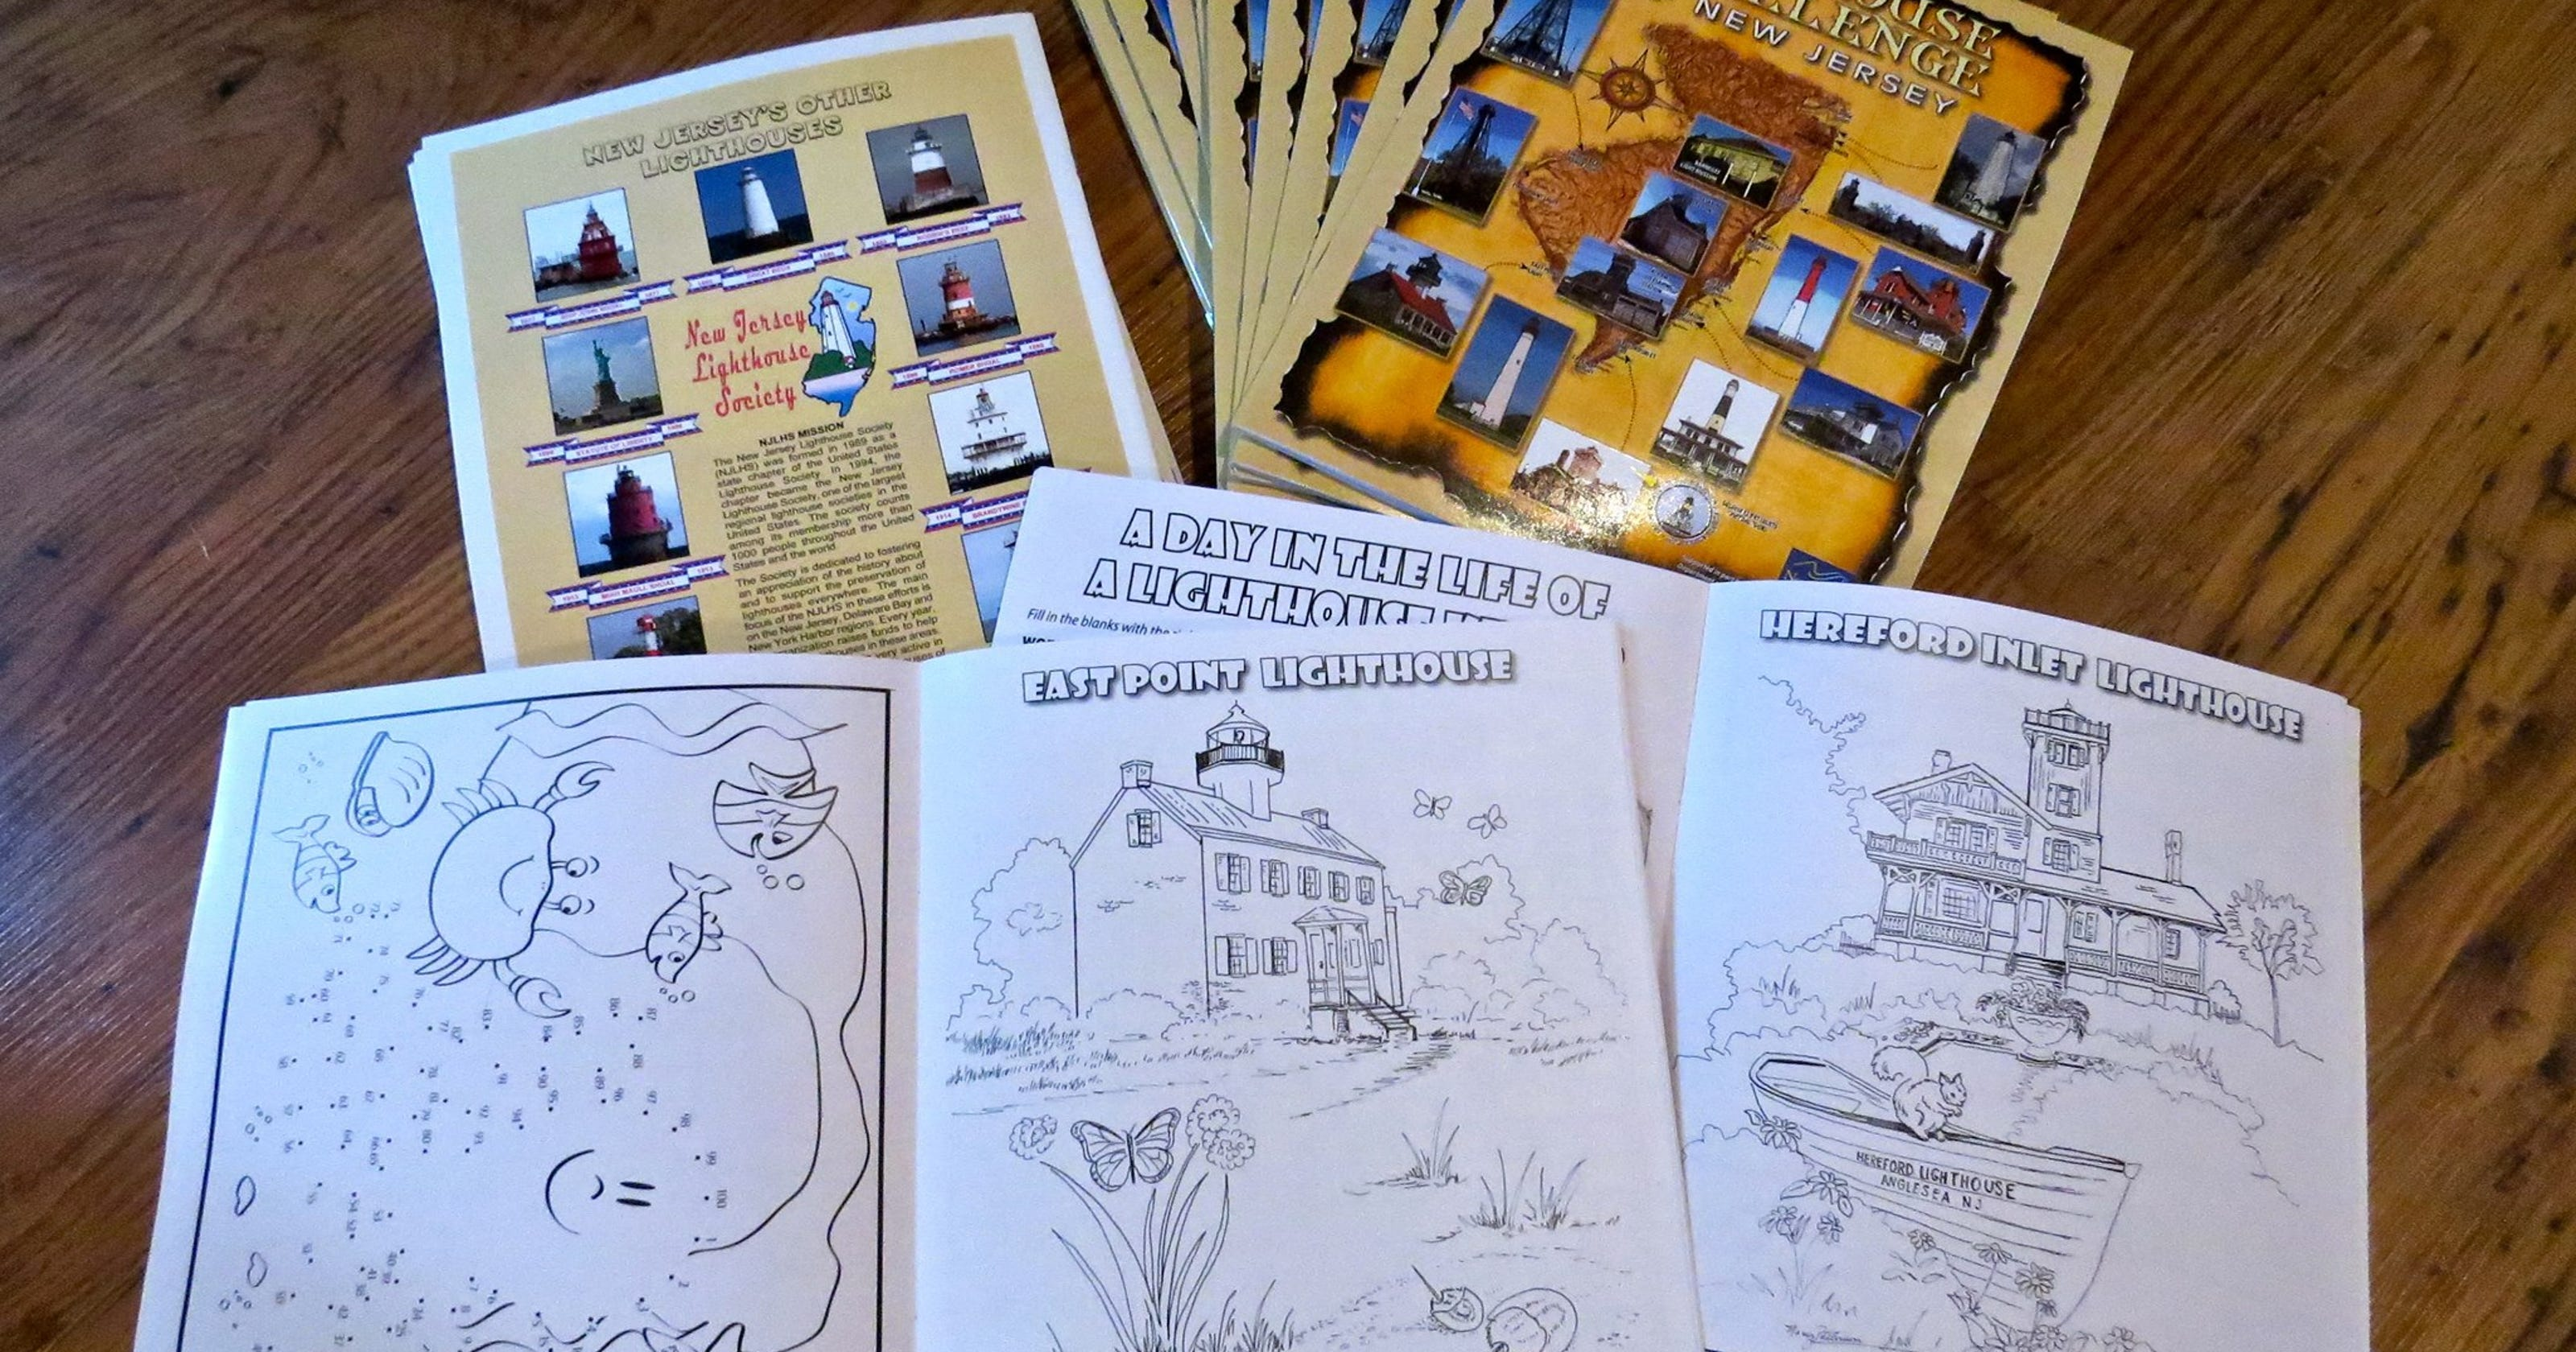 New coloring book available during Lighthouse Challenge